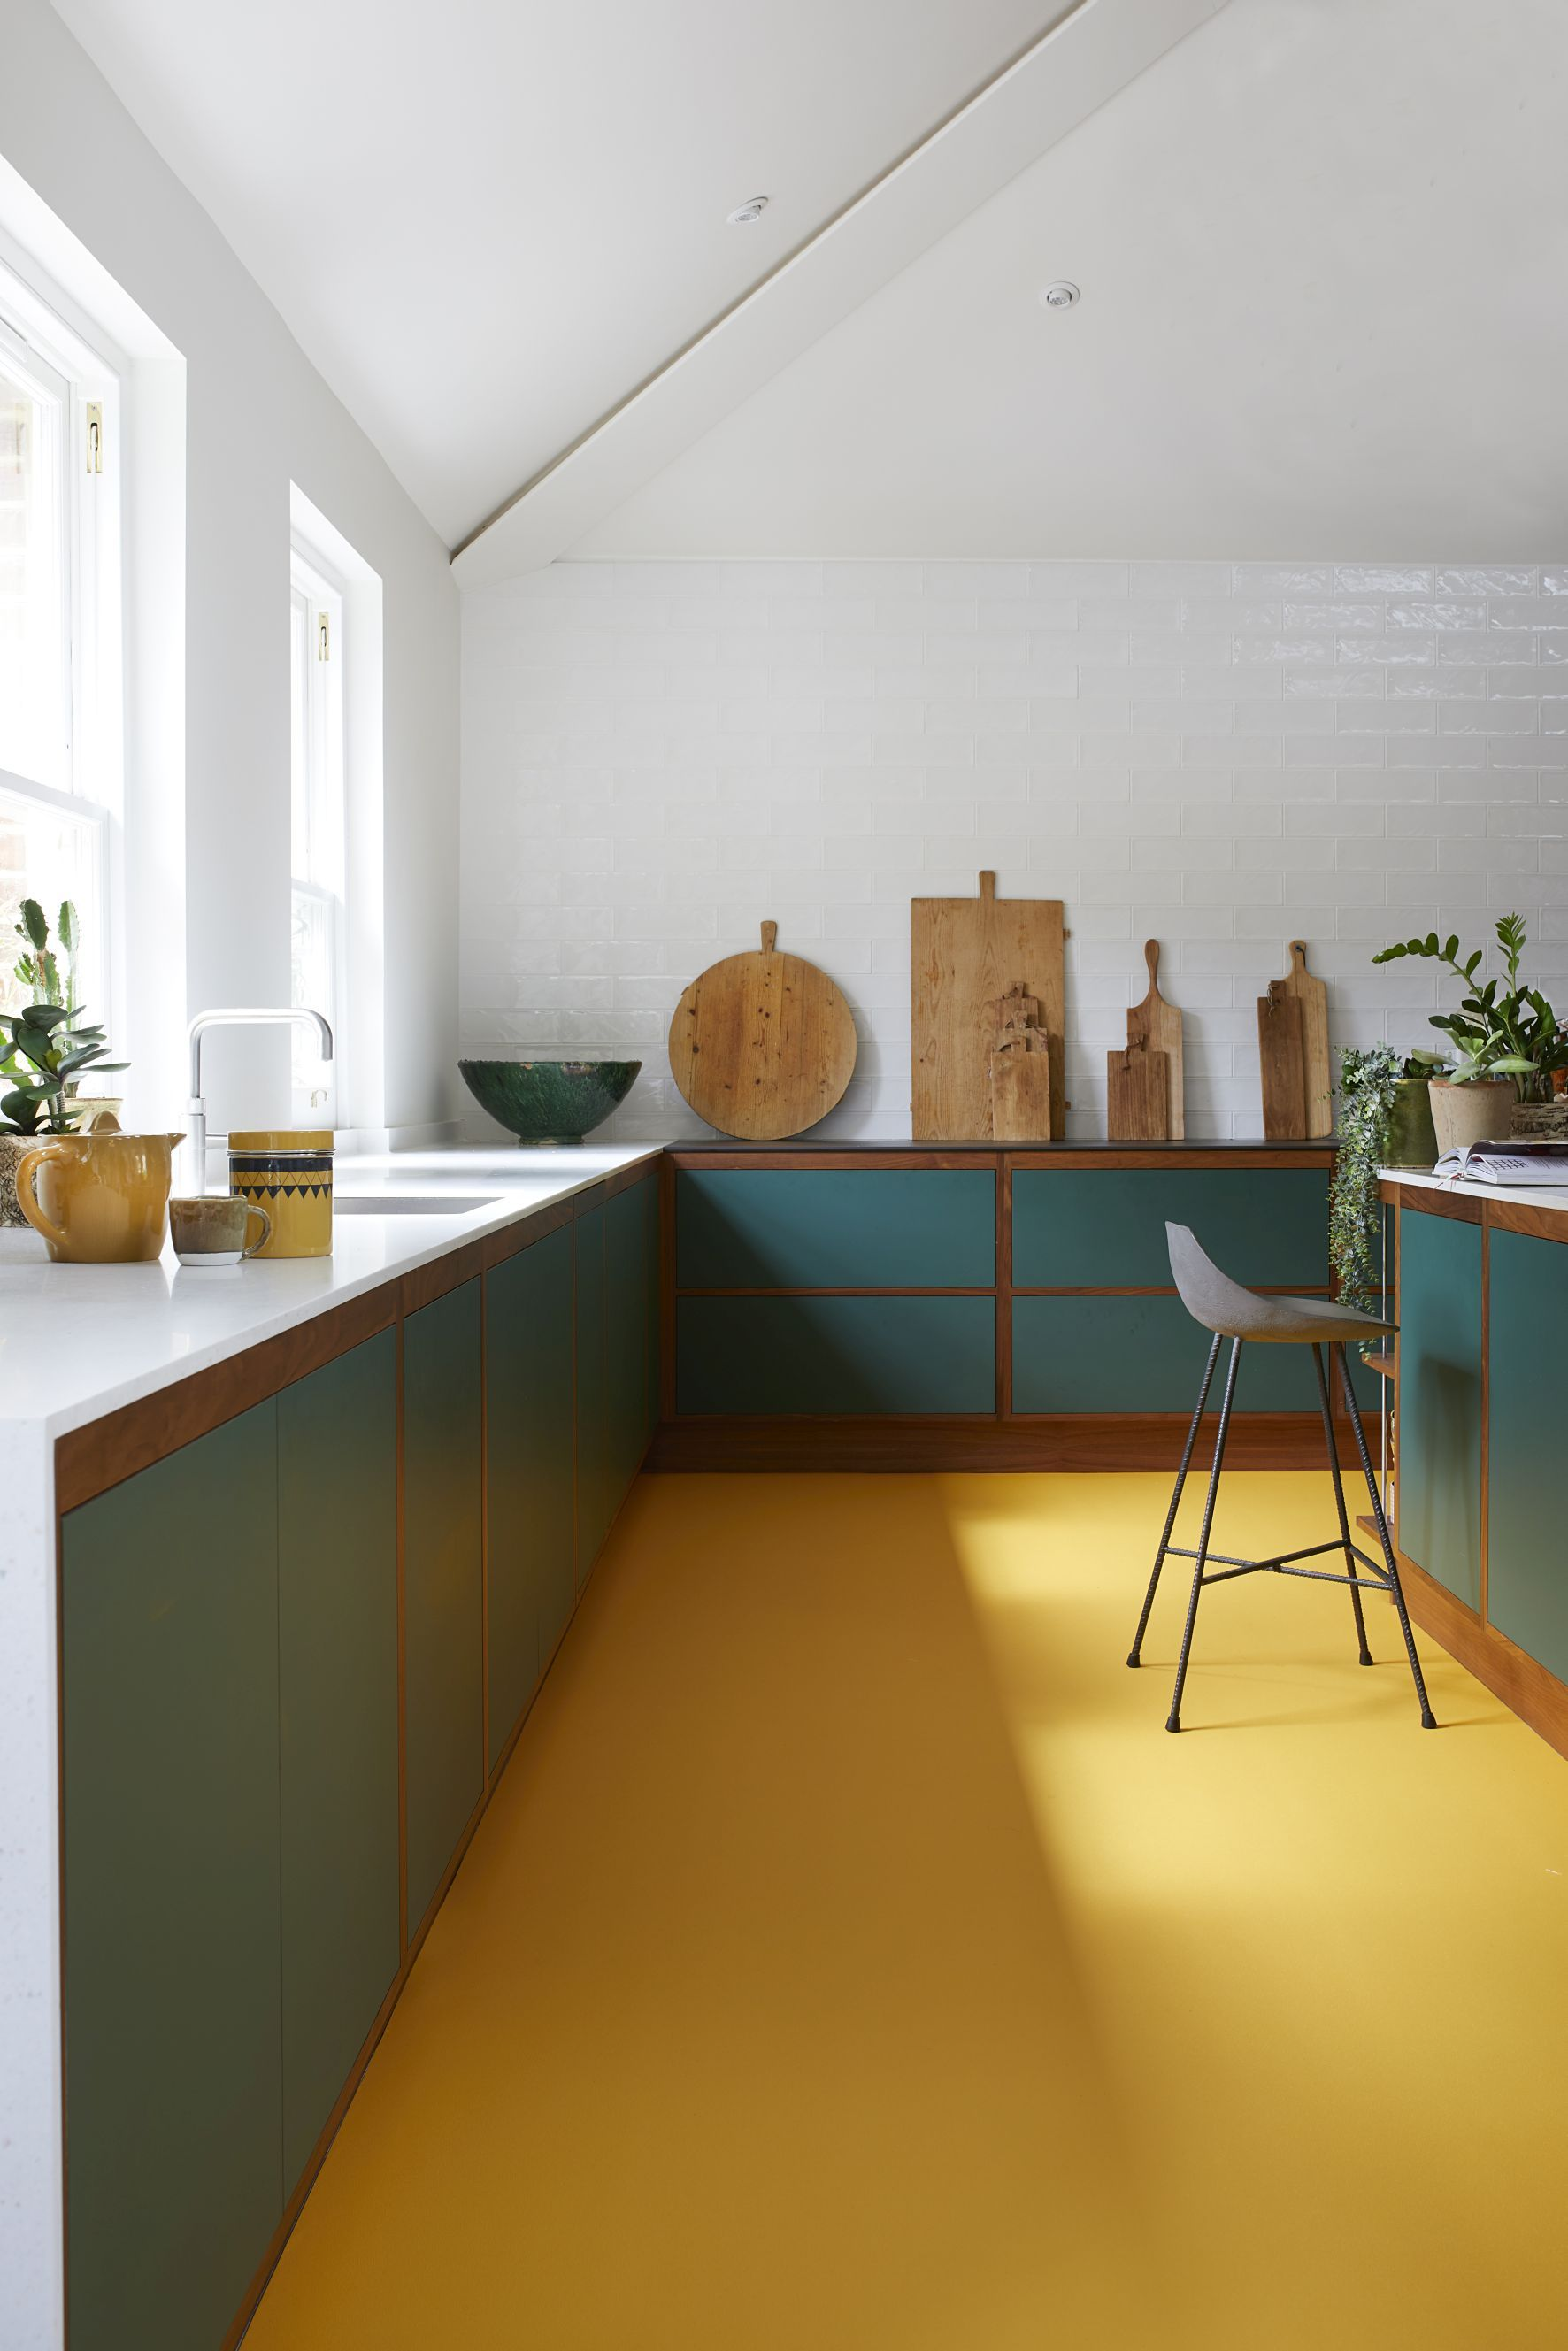 Choosing Rubber Flooring Real Homes In 2020 Kitchen Decor Sets Kitchen Design Color Home Decor Kitchen